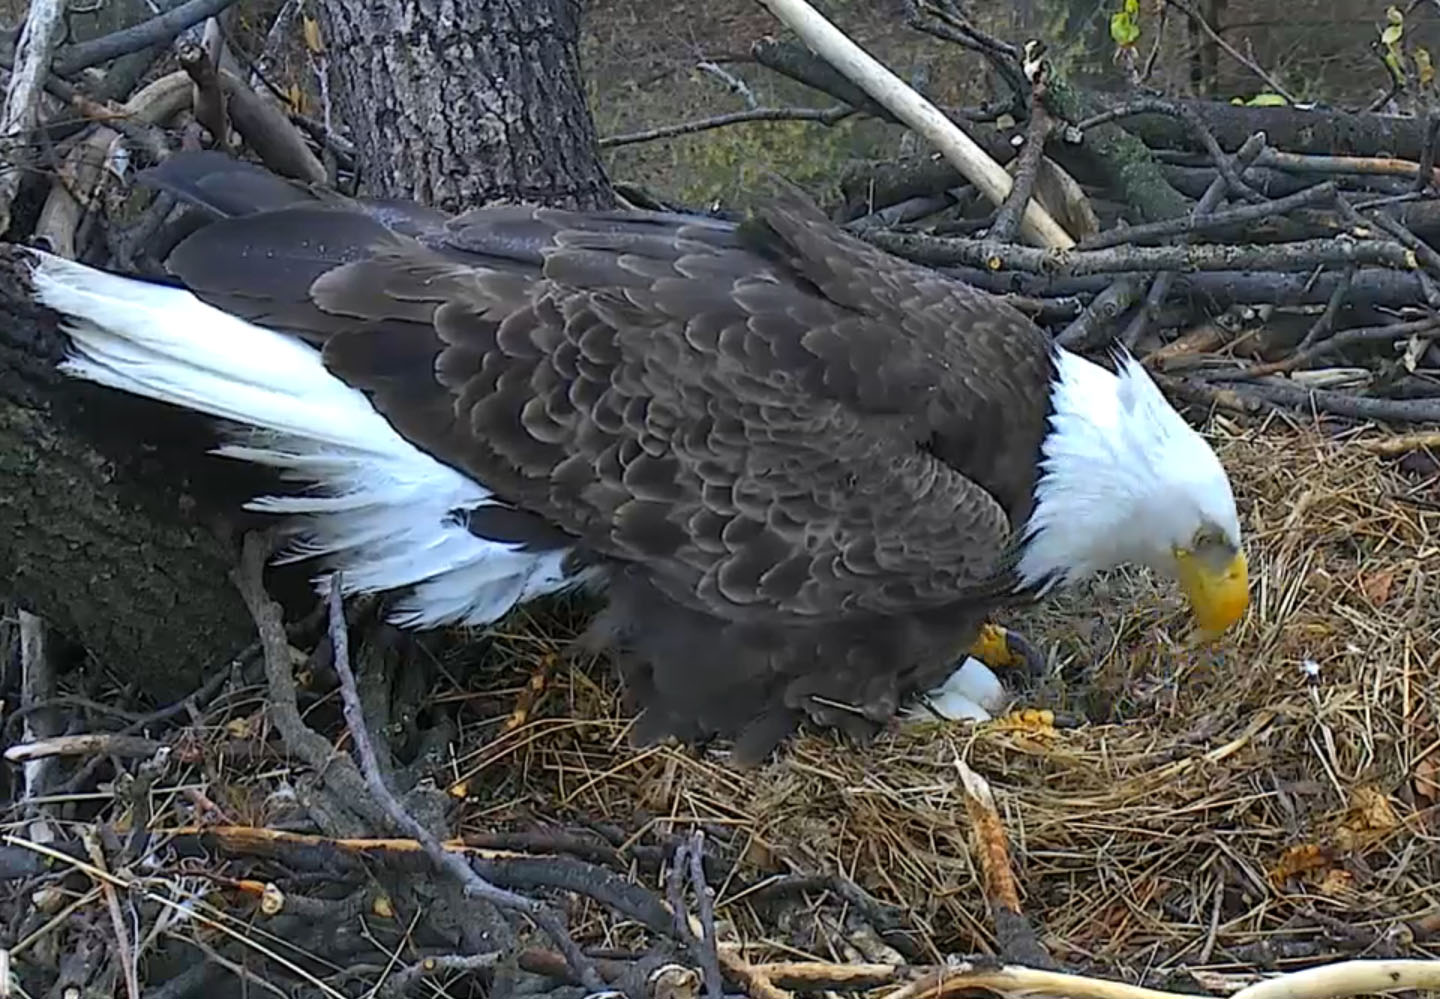 Tending to the nest as the hatching process begins March 28 in this screenshot from the DC Eagle Cam. (© 2017 American Eagle Foundation, DCEAGLECAM.ORG)